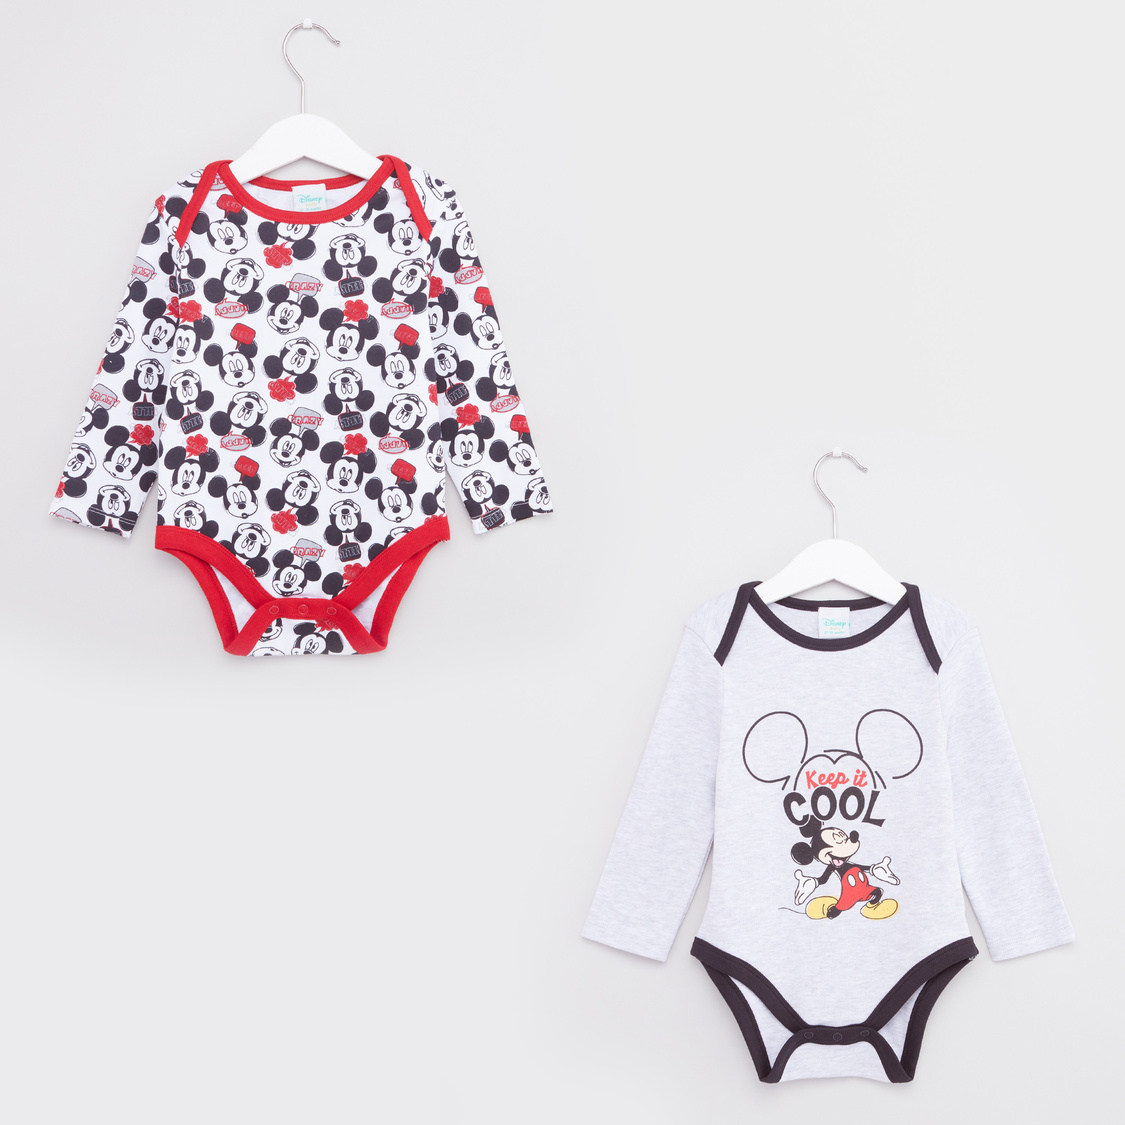 Set of 2 - Mickey Mouse Printed Bodysuit  with Button Closure